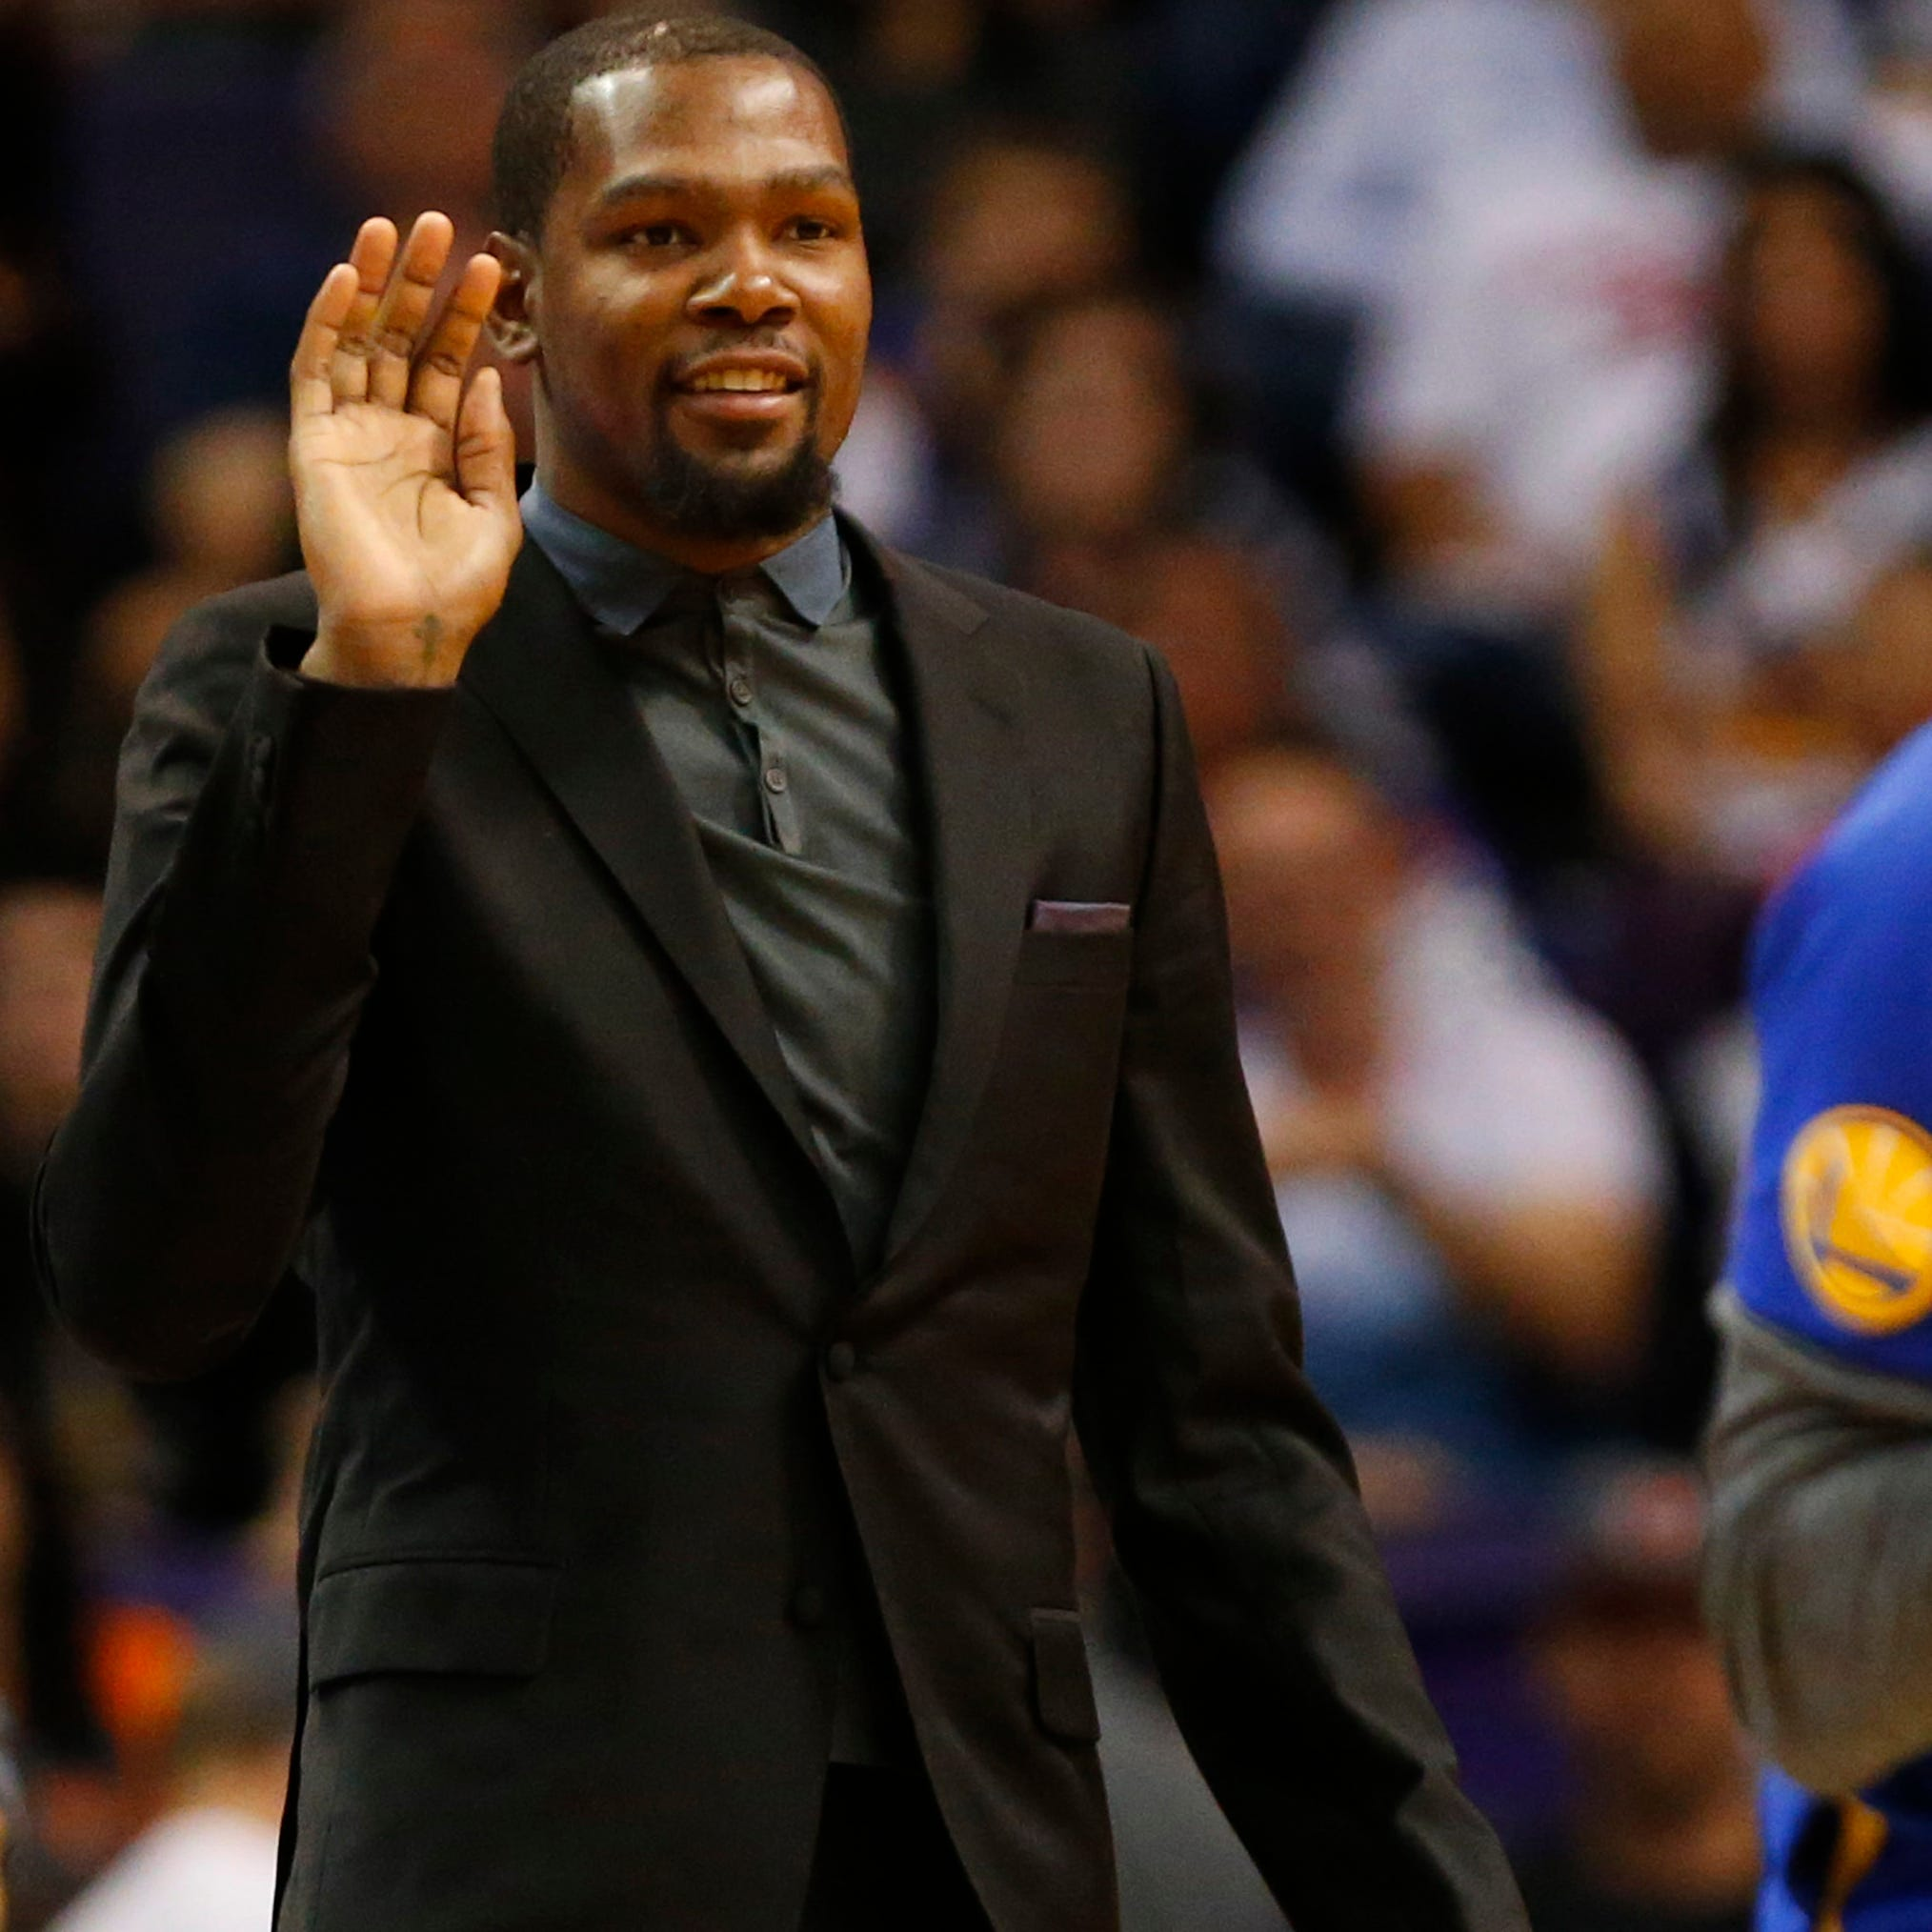 Phoenix family knows there's more to Kevin Durant's social media than feuds with trolls